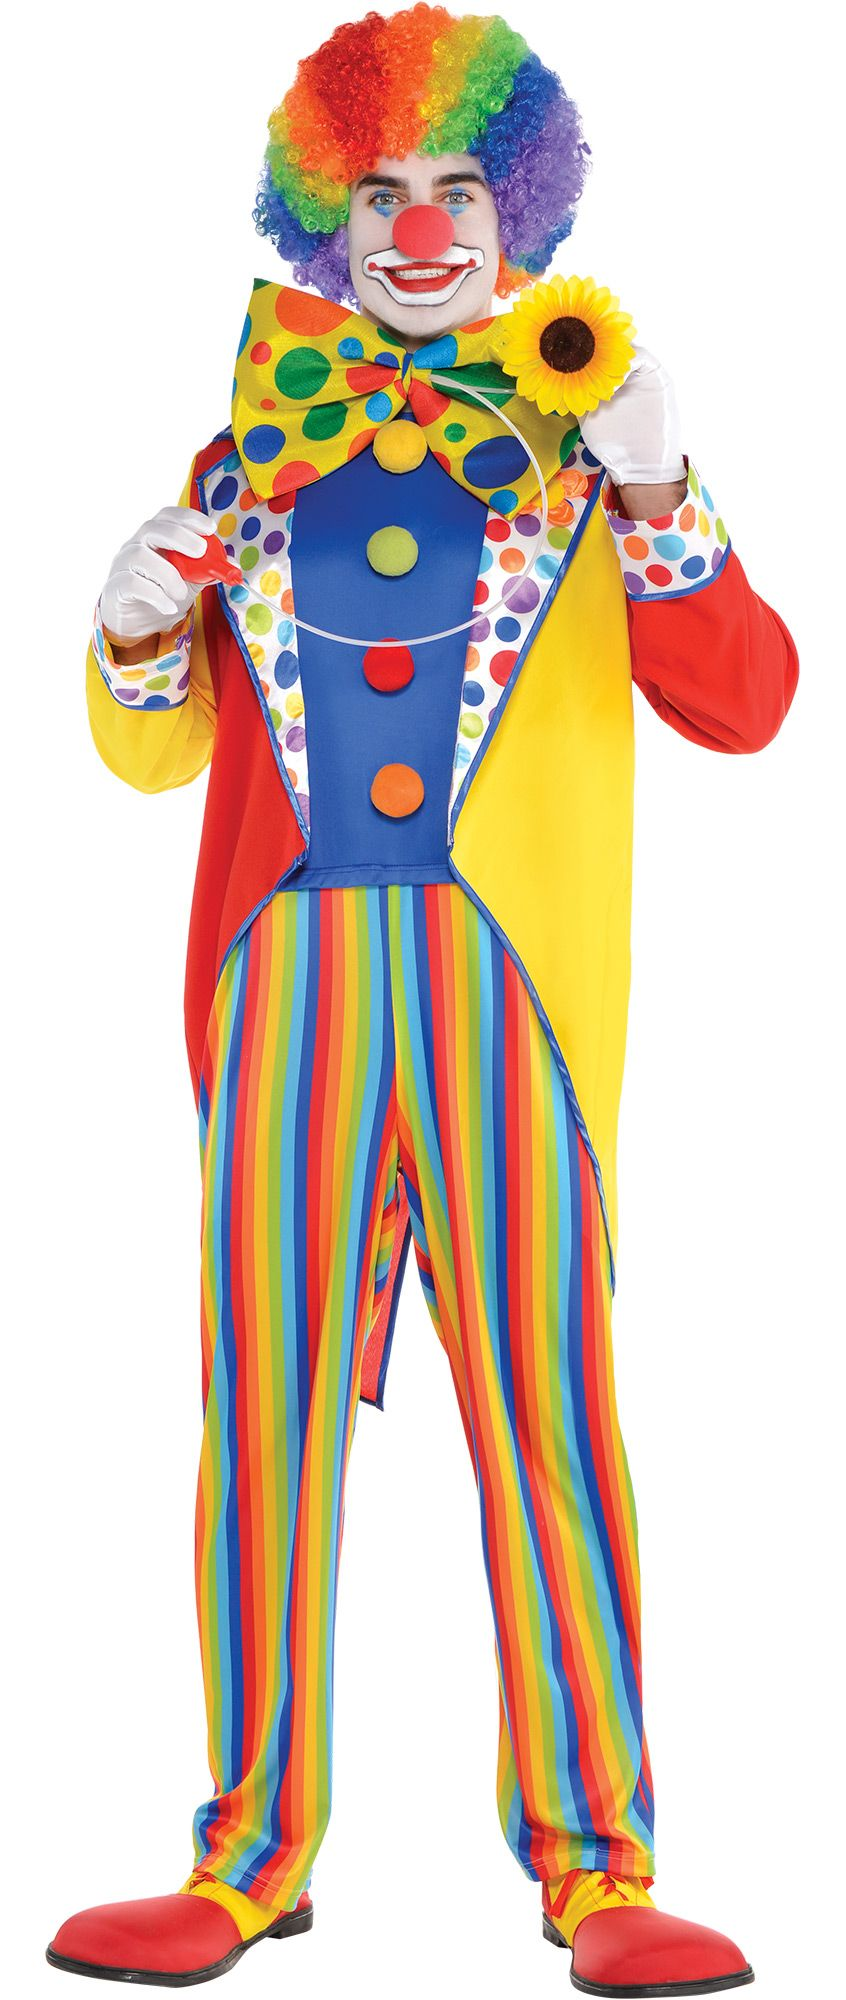 Create Your Own Look - Men's Clown